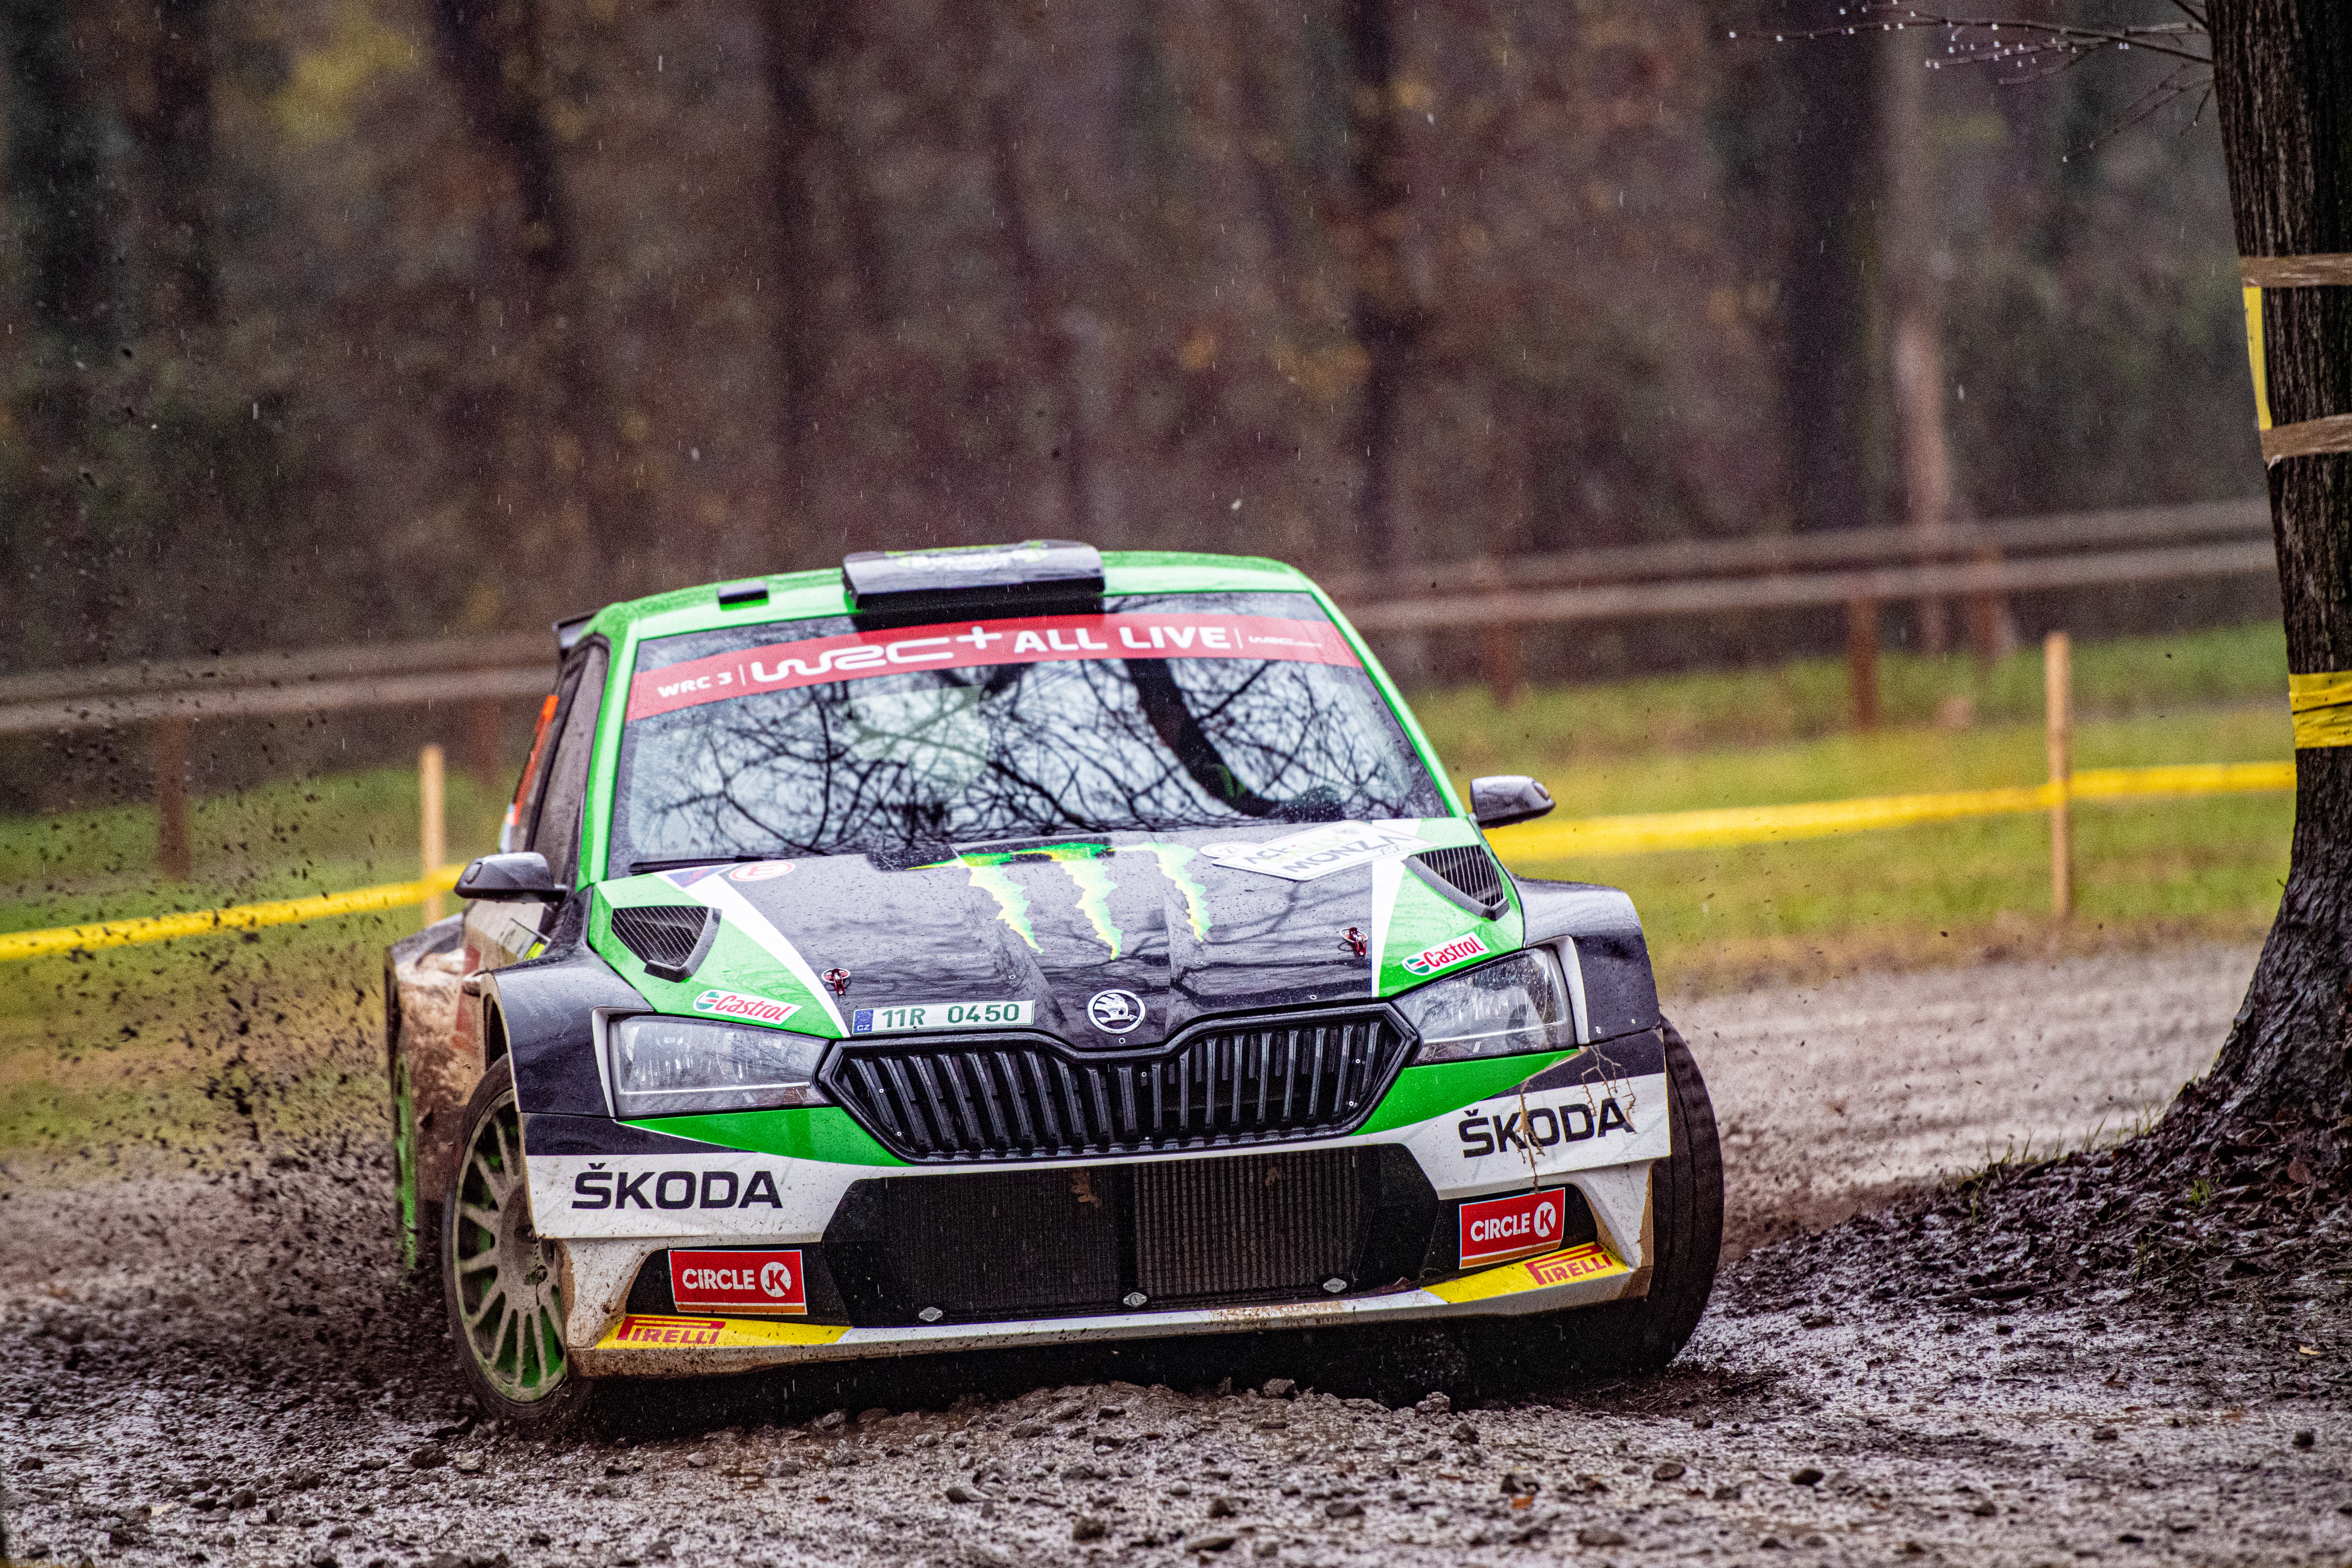 ACI Rally Monza: Clever tactics pays off as SKODA crews lead WRC2 and WRC3 after first leg - Image 1